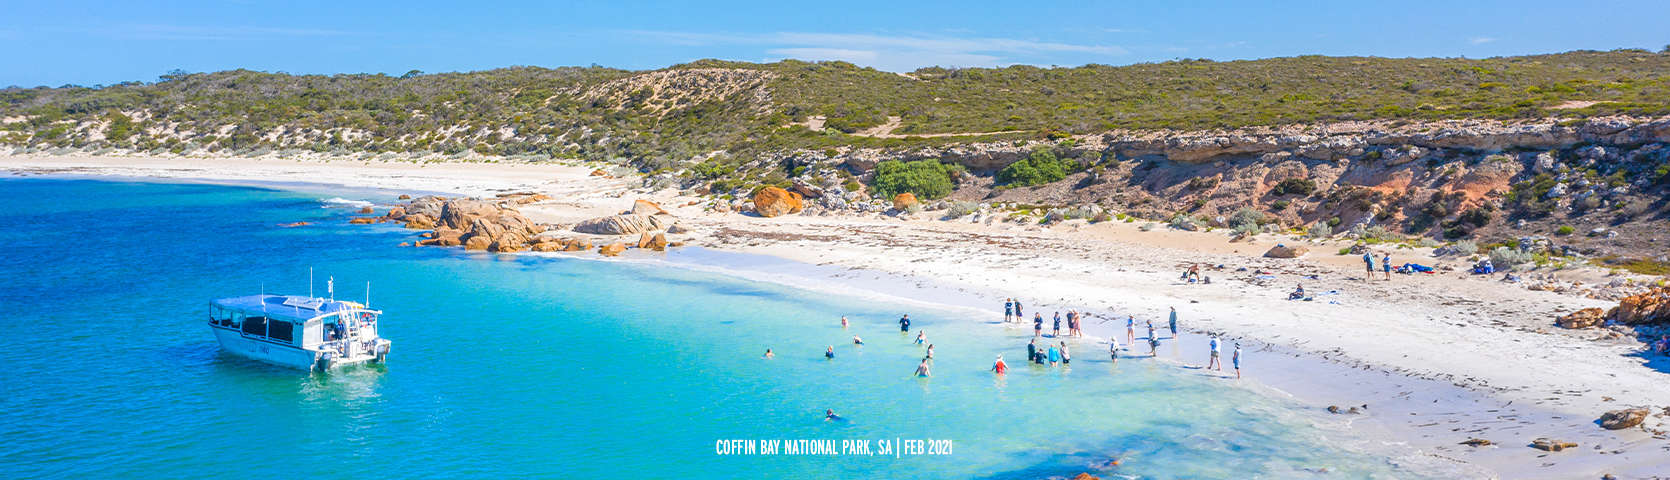 Coffin-Bay-National-Park-South-Australia-Coral-Expeditions-Cruise